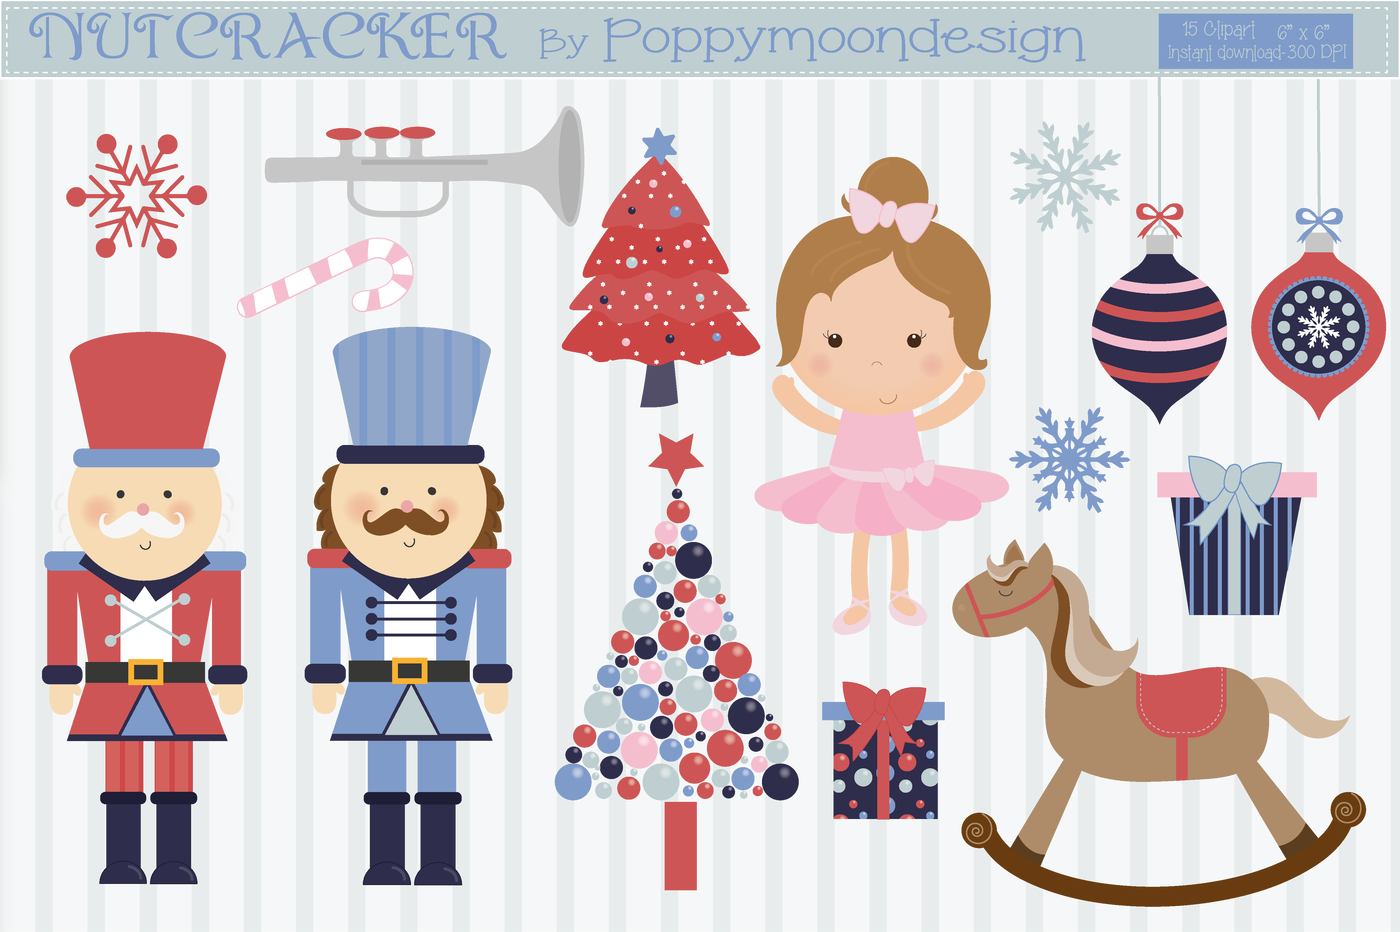 image transparent stock Nutcracker clipart. By poppymoon design thehungryjpeg